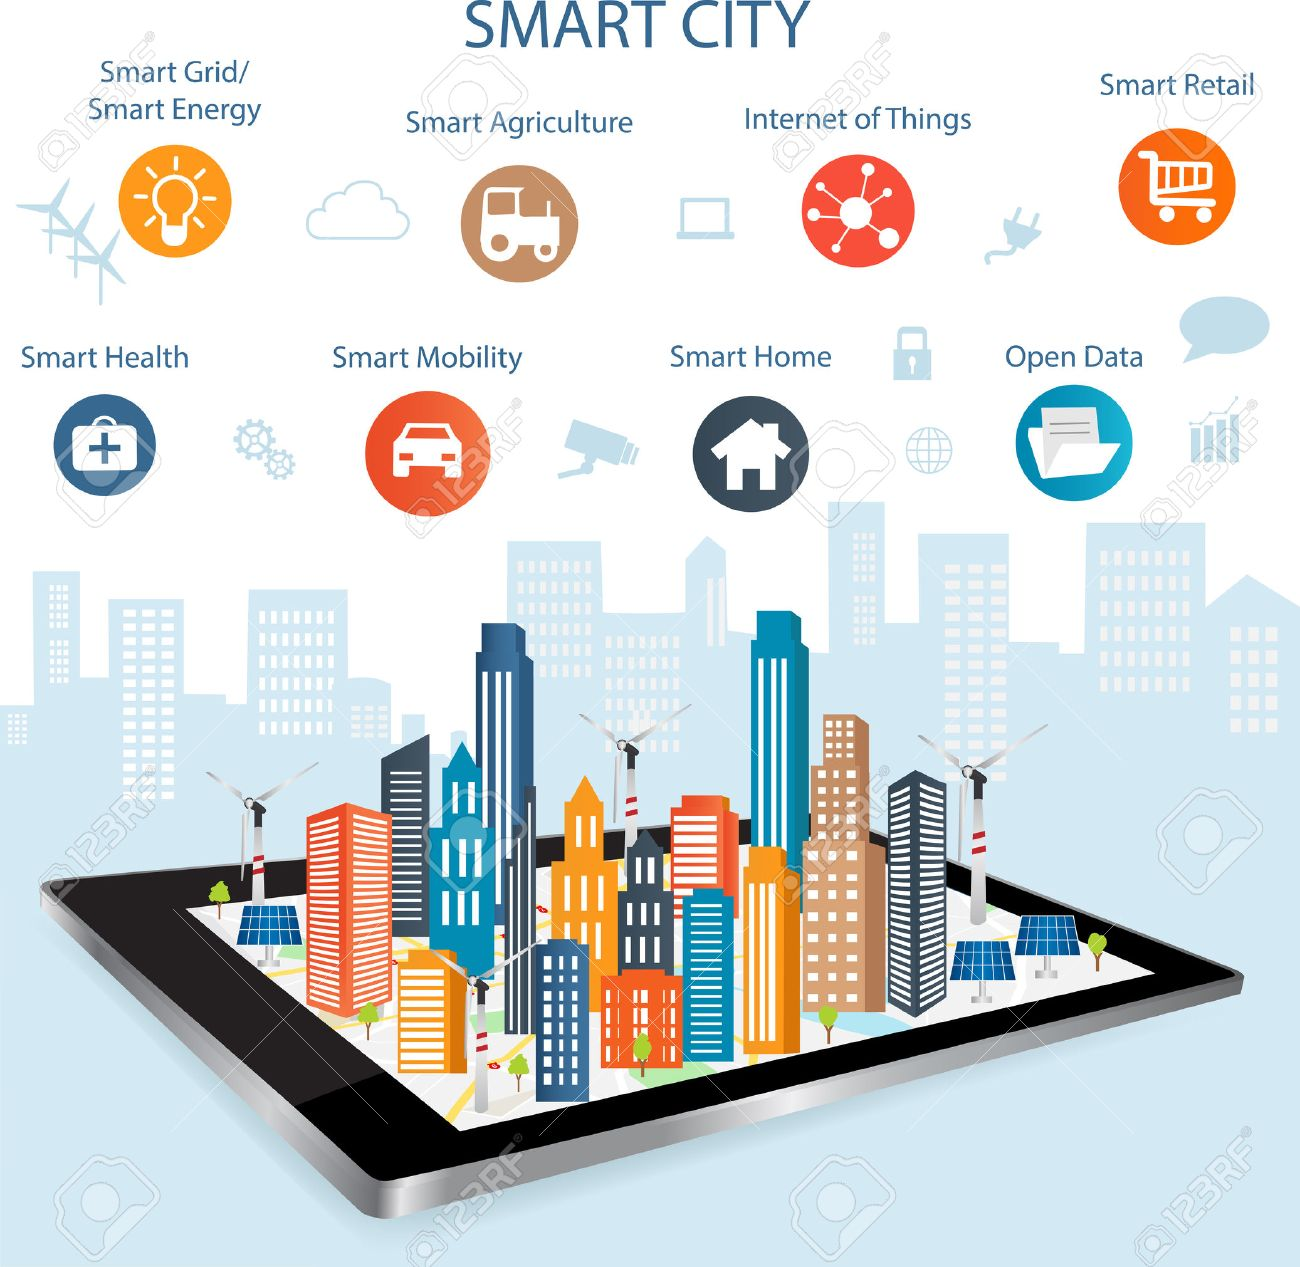 Smart city on a digital touch screen tablet with different icon and elements and environmental care.Modern city design with future technology for living. Controlling your home appliances with tablet.Smart city concept - 53824703